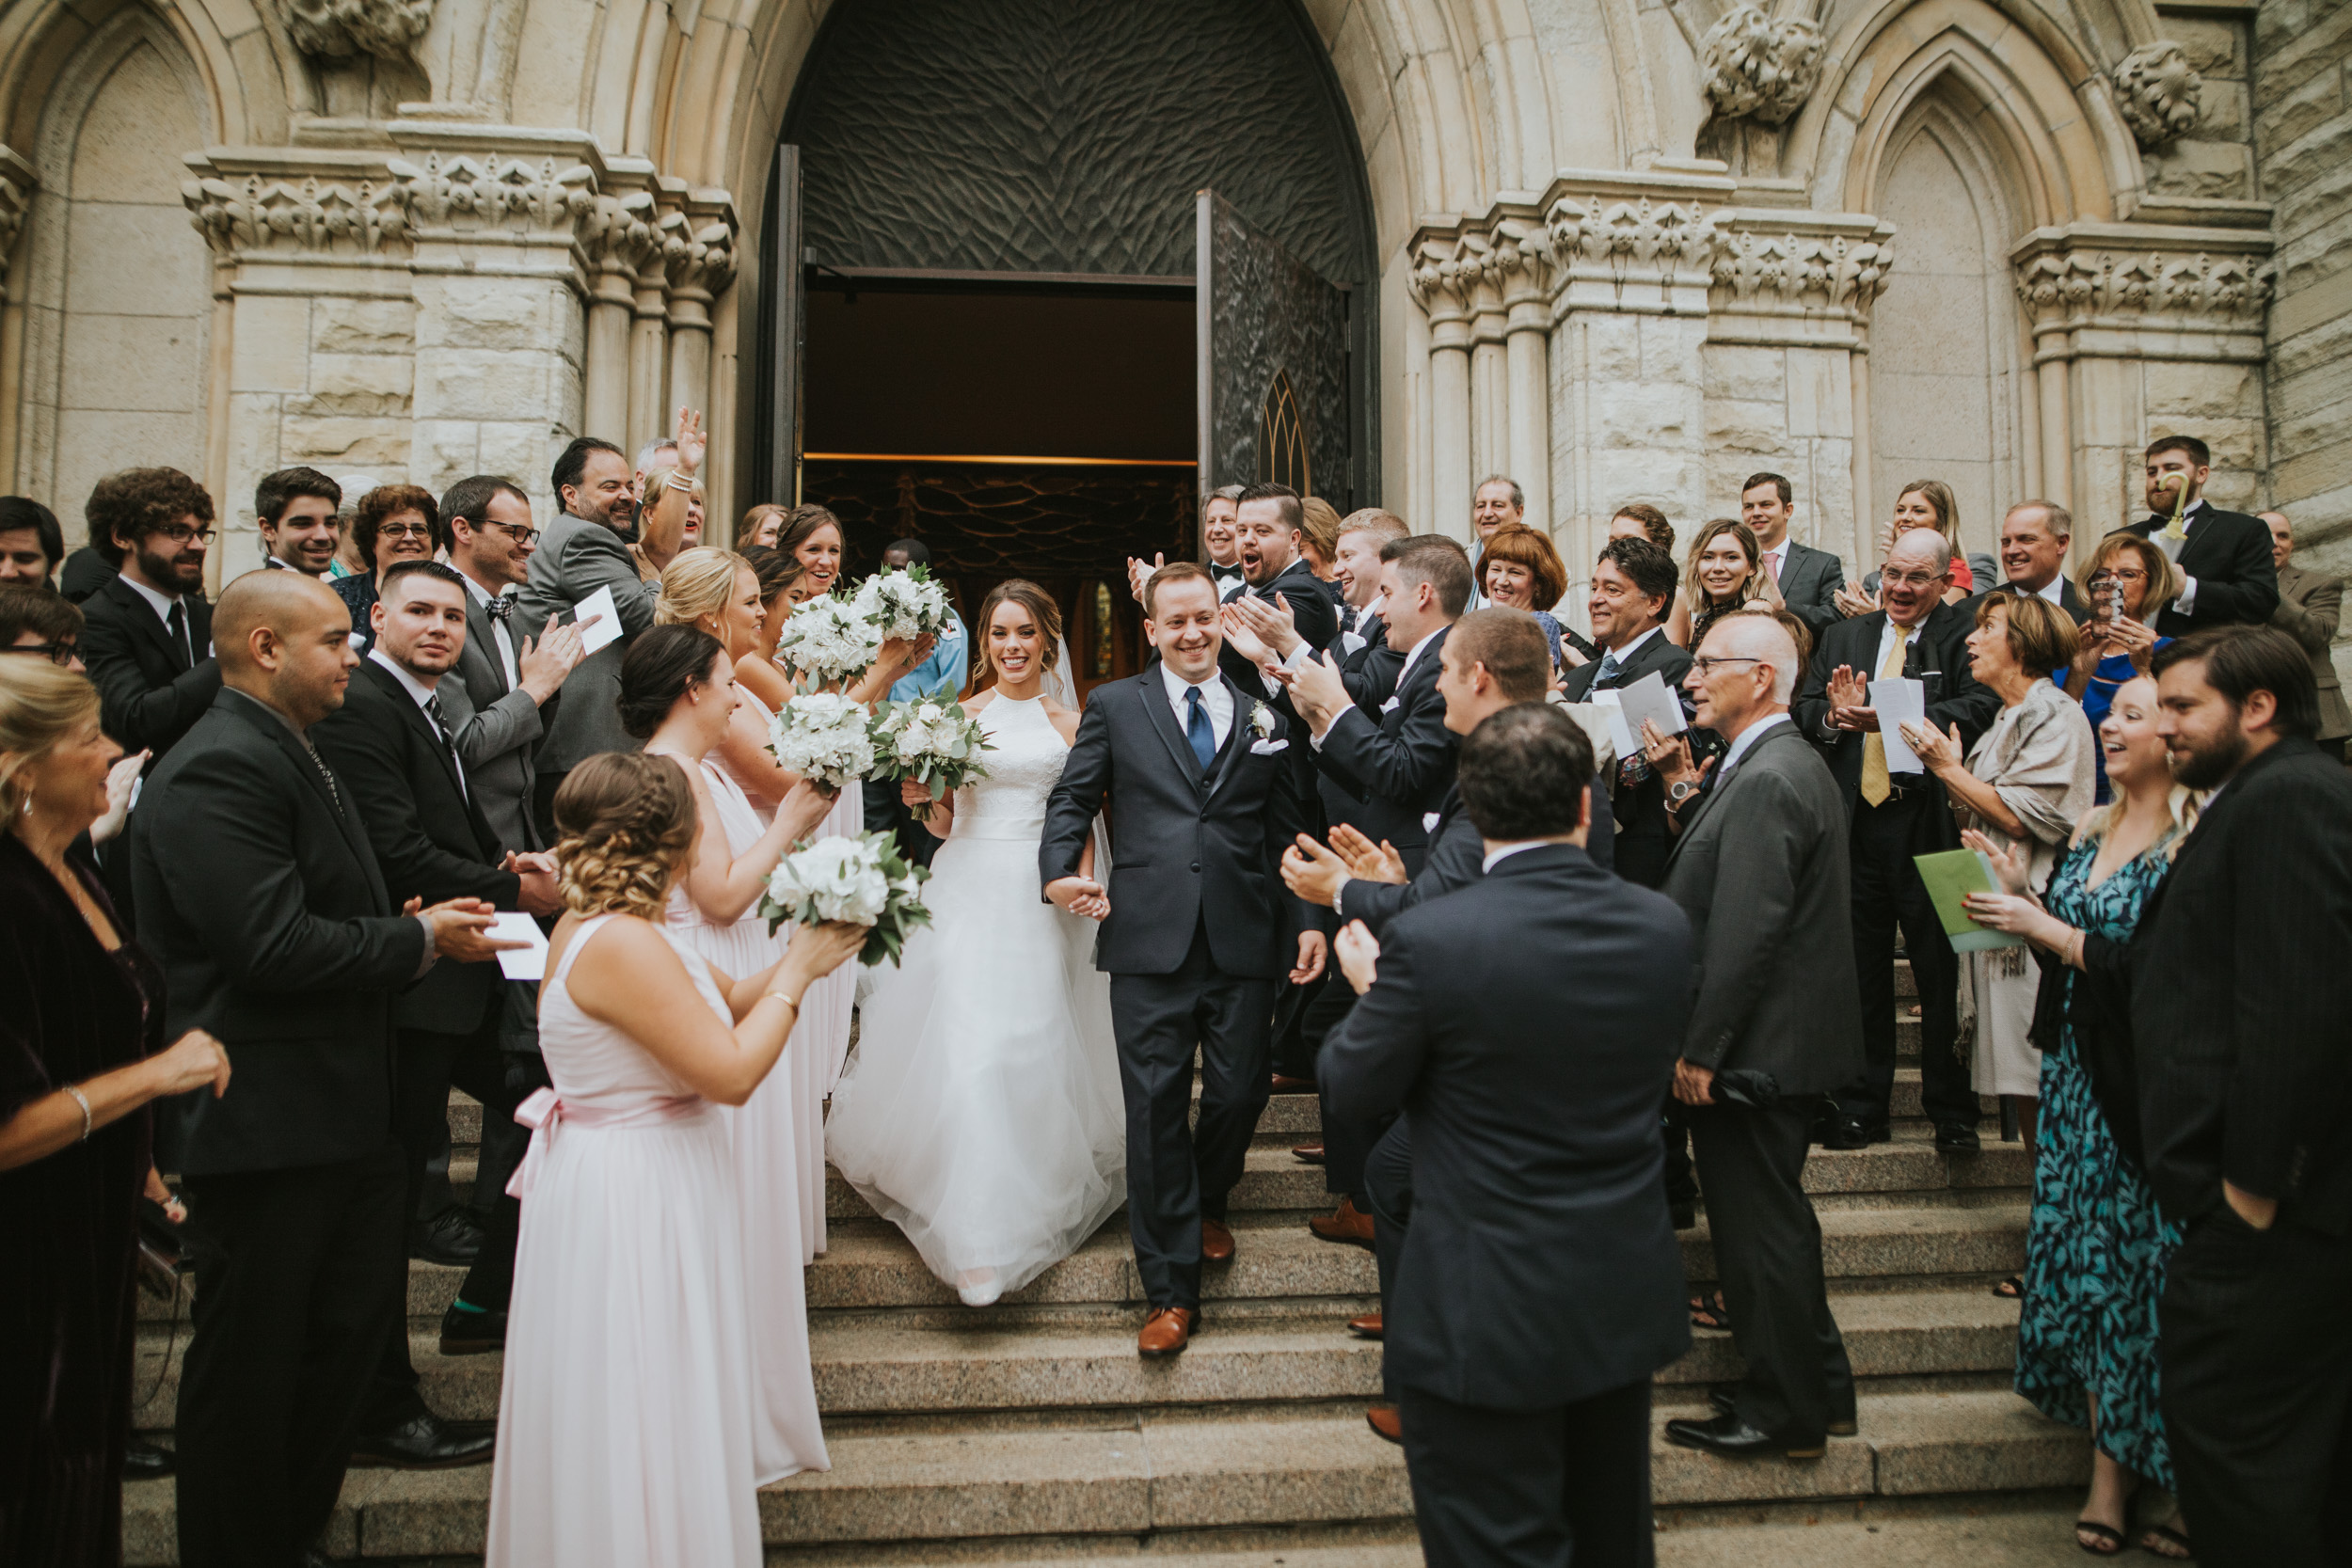 Downtown Chicago Wedding_Polly C Photography 1706163527.jpg